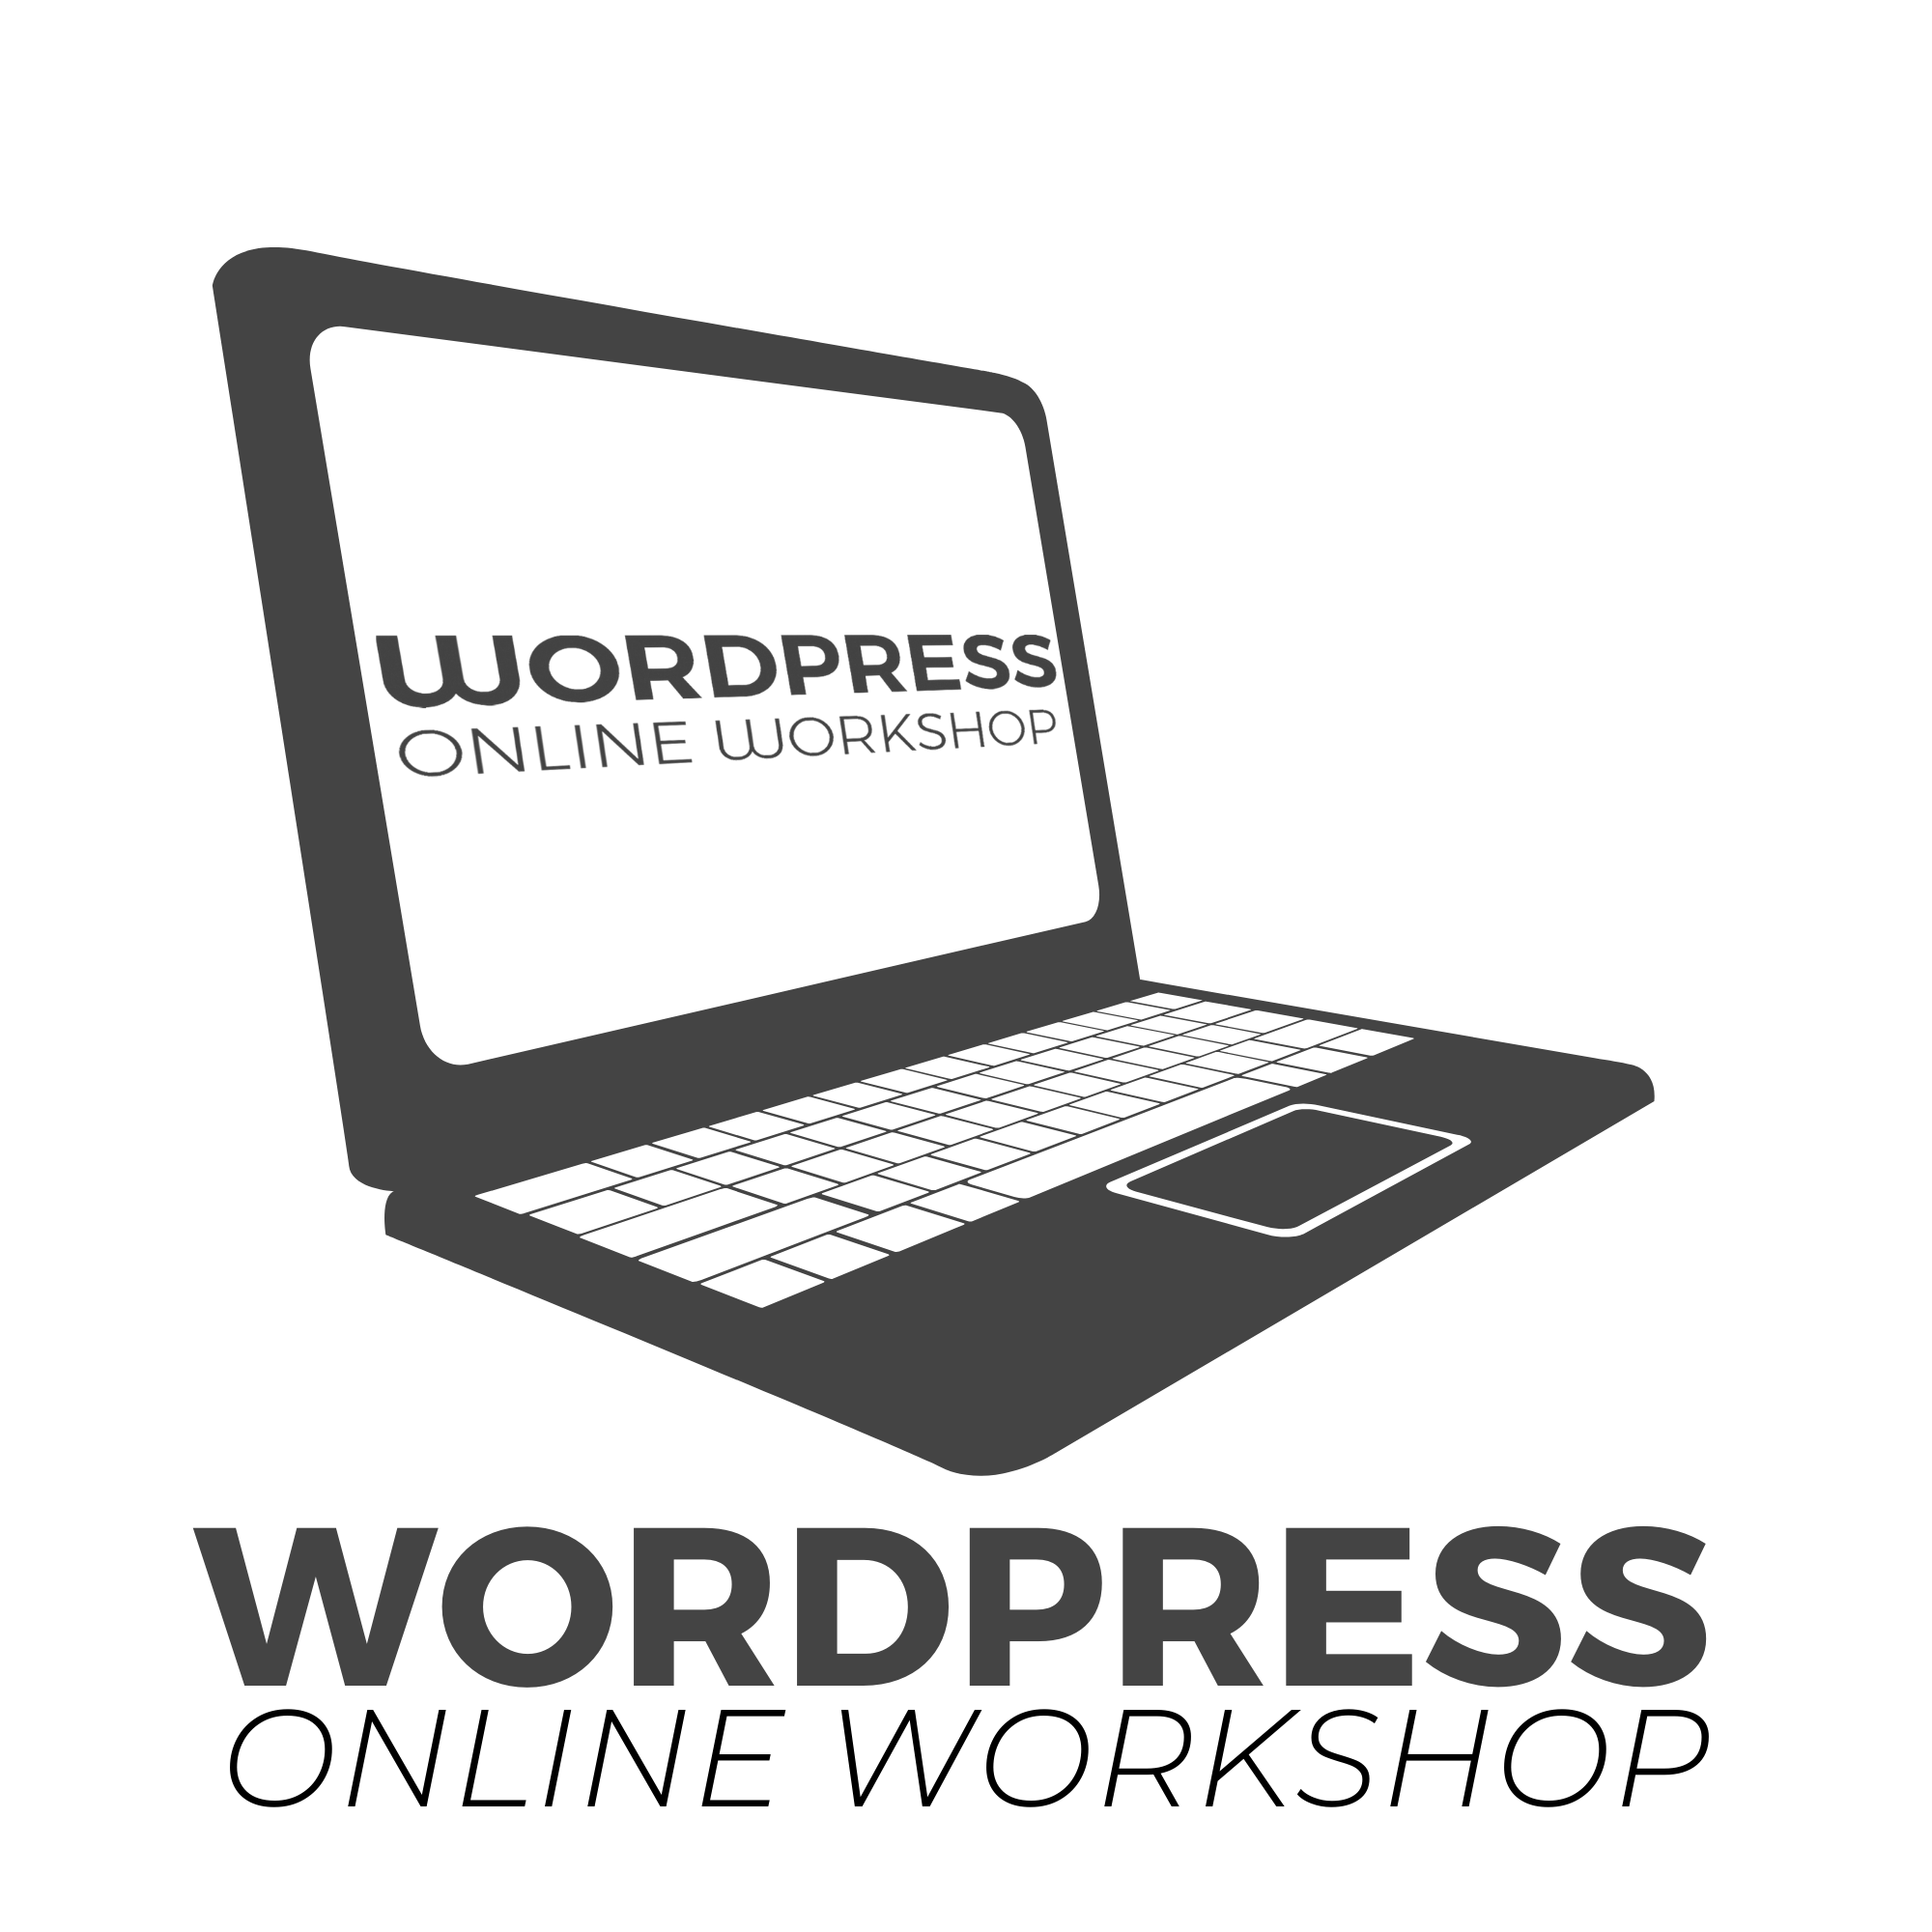 WordPress Online Workshop with AnitaM